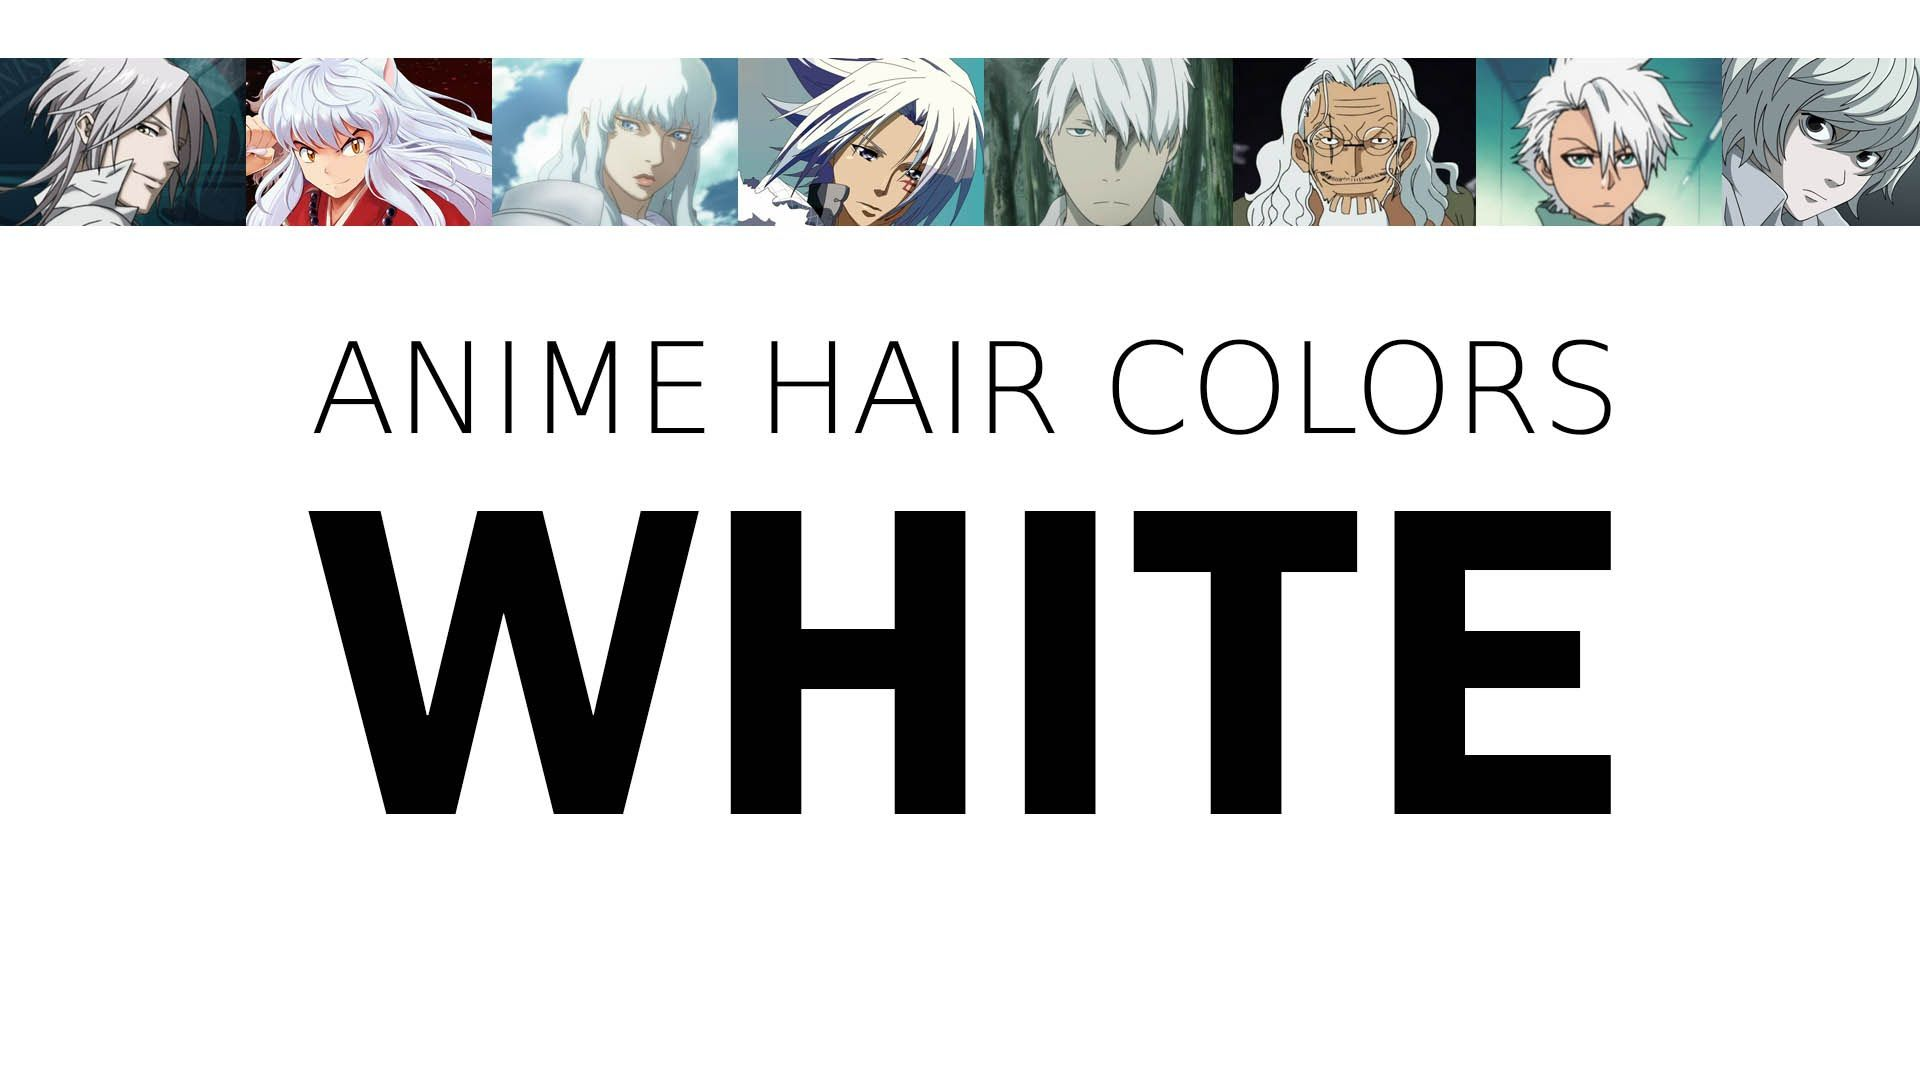 Hair Color In Anime Characters White Meaning Psychology Anime Hair Color Anime Hair Color Meanings